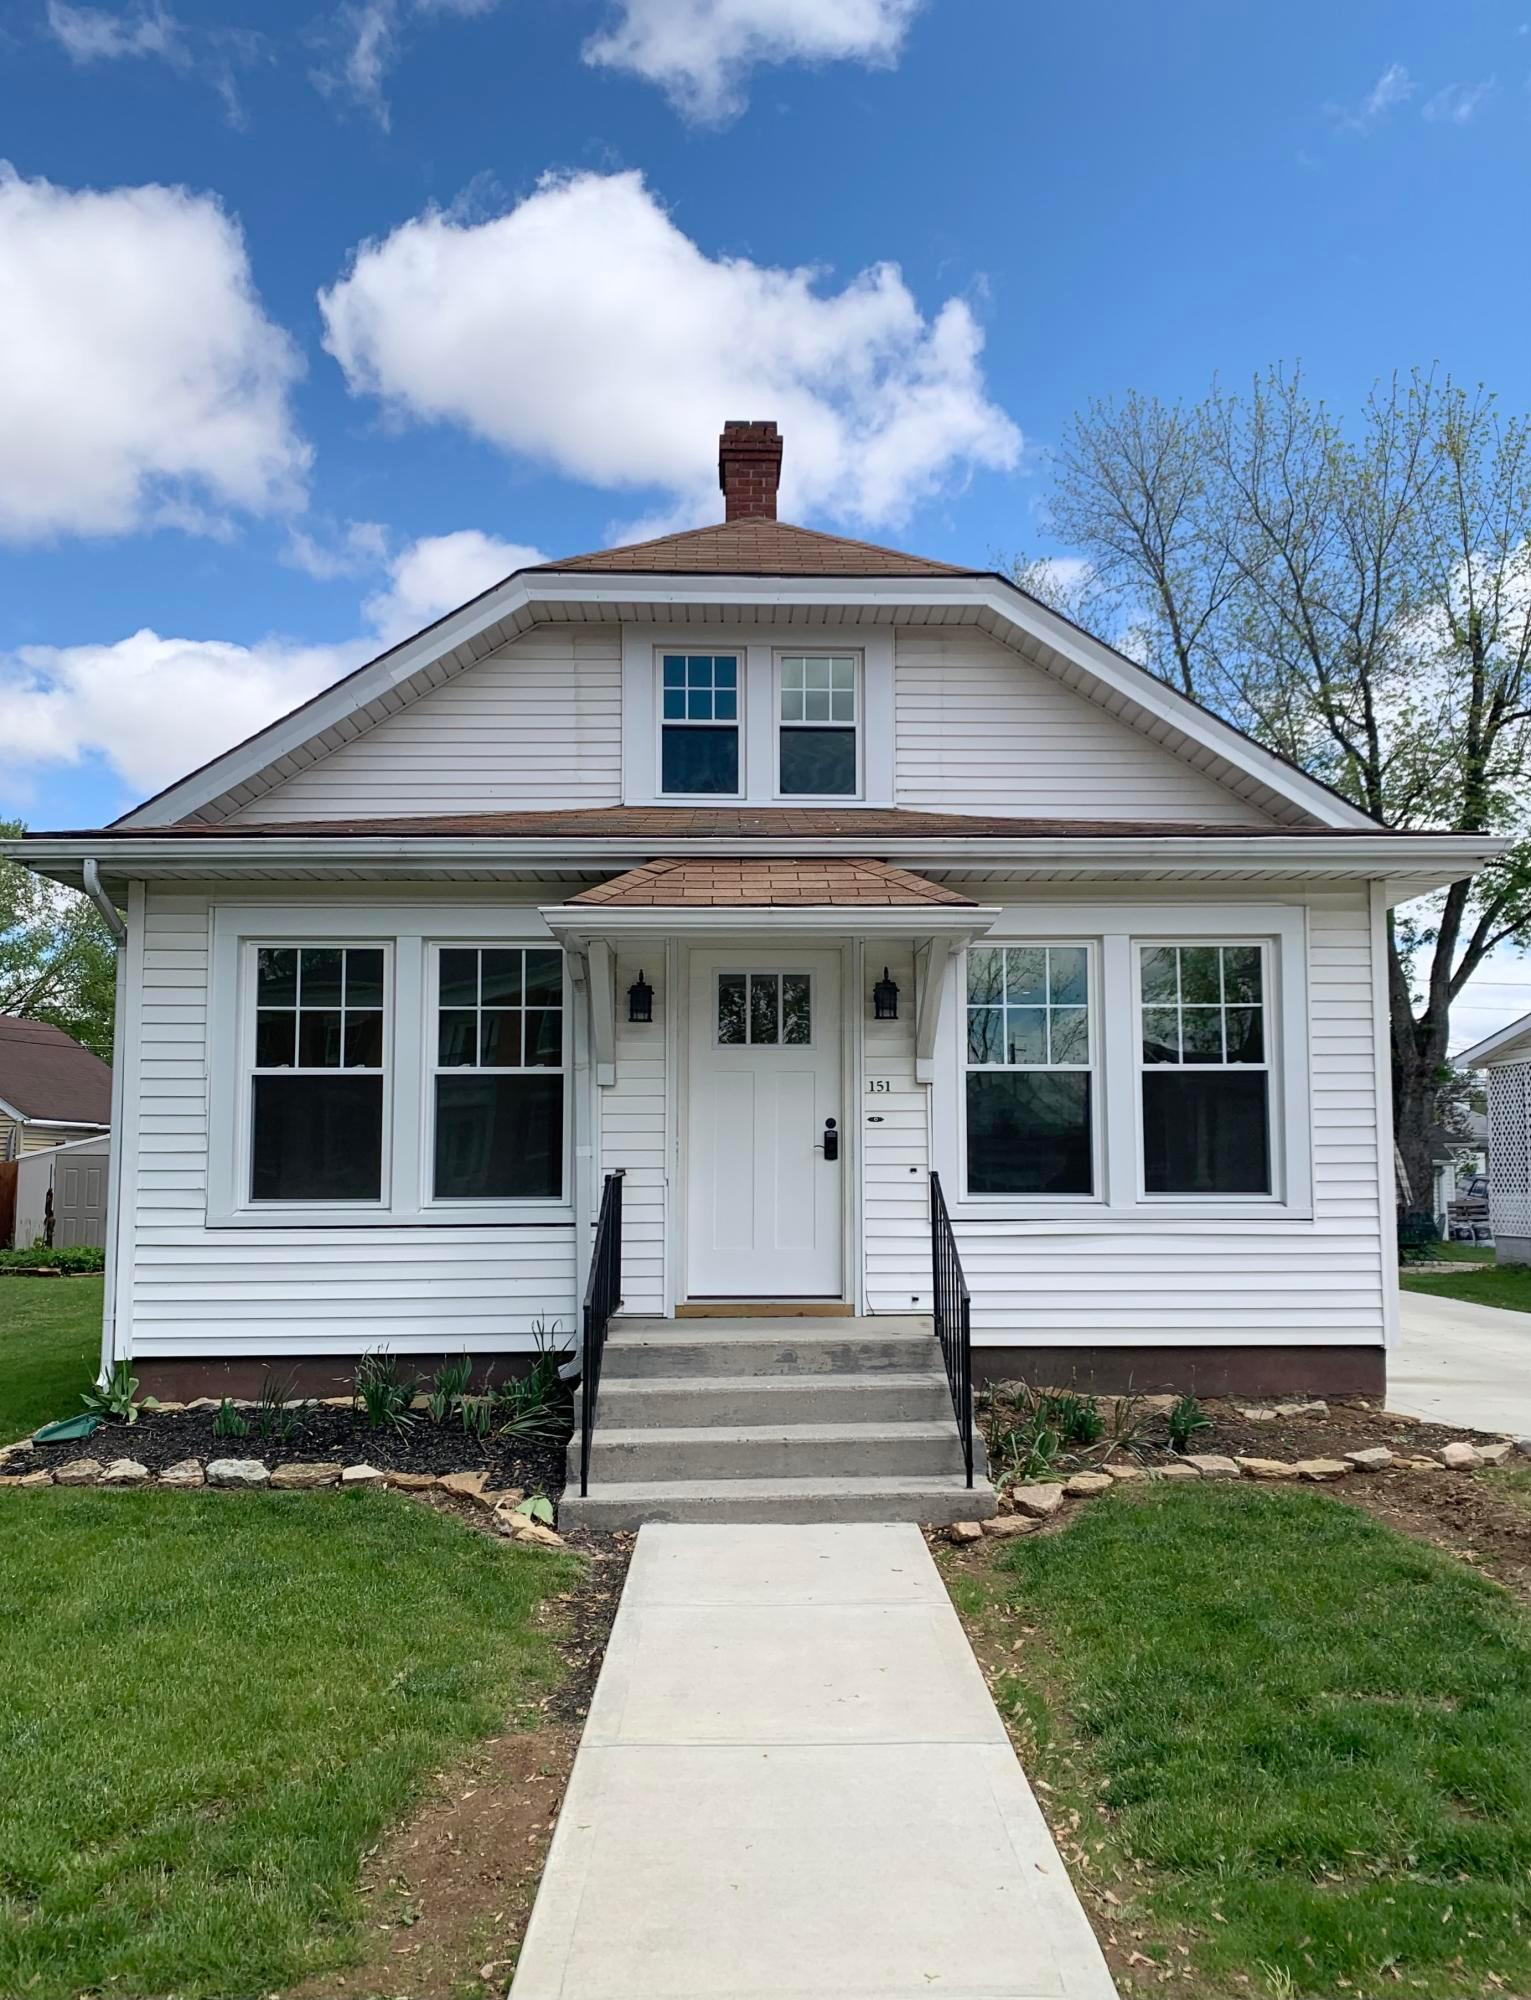 Photo of 151 Springfield Street, Frankfort, OH 45628